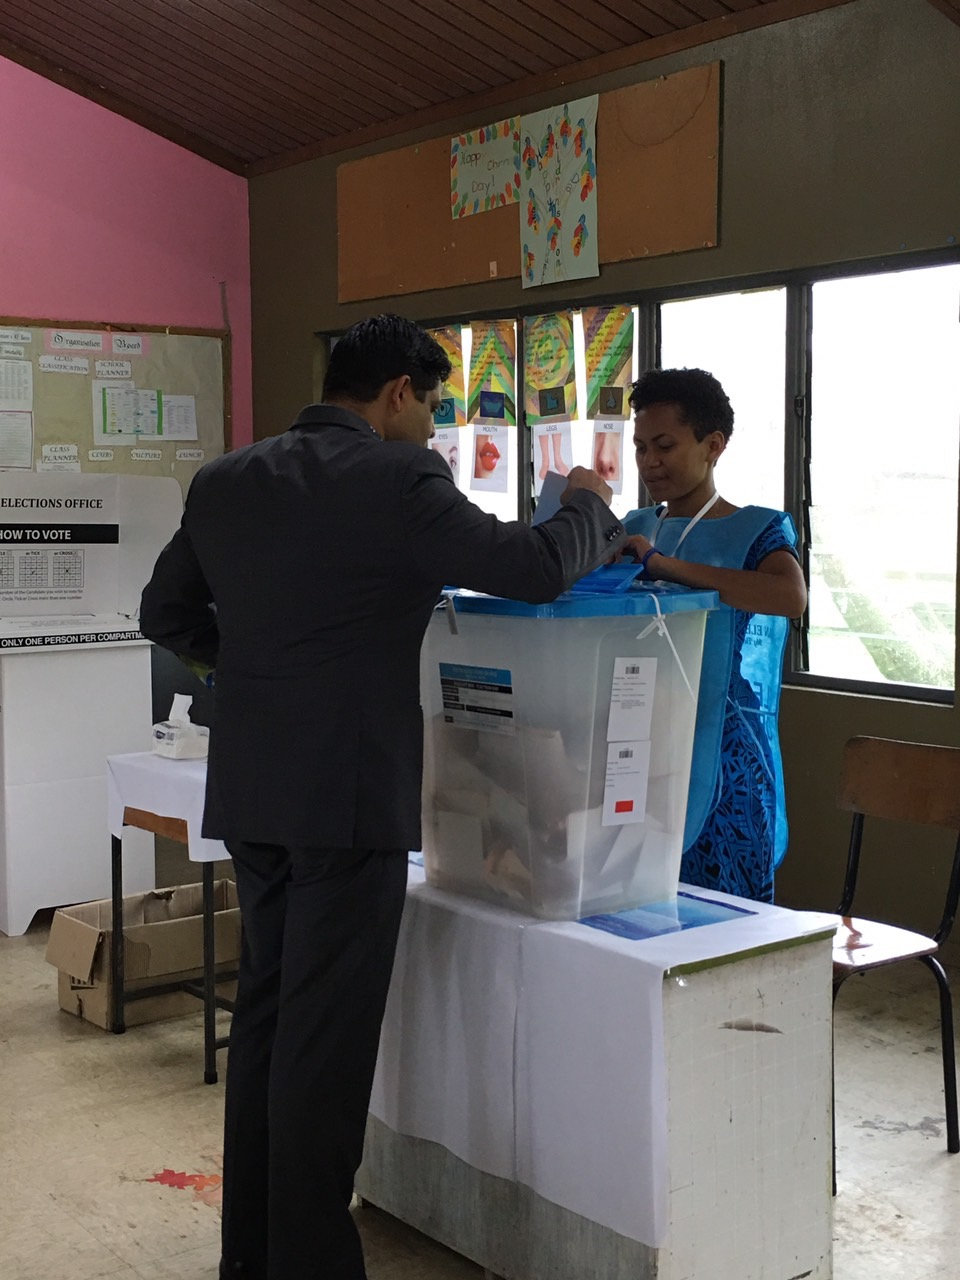 FijiFirst general-secretary Aiyaz Sayed-Khaiyum on November 14, 2018 casts his ballot at the Suva Society for the Intellectually Disabled at Salato Road in Namadi Heights, Suva. He was accompanied by his wife, Ela.